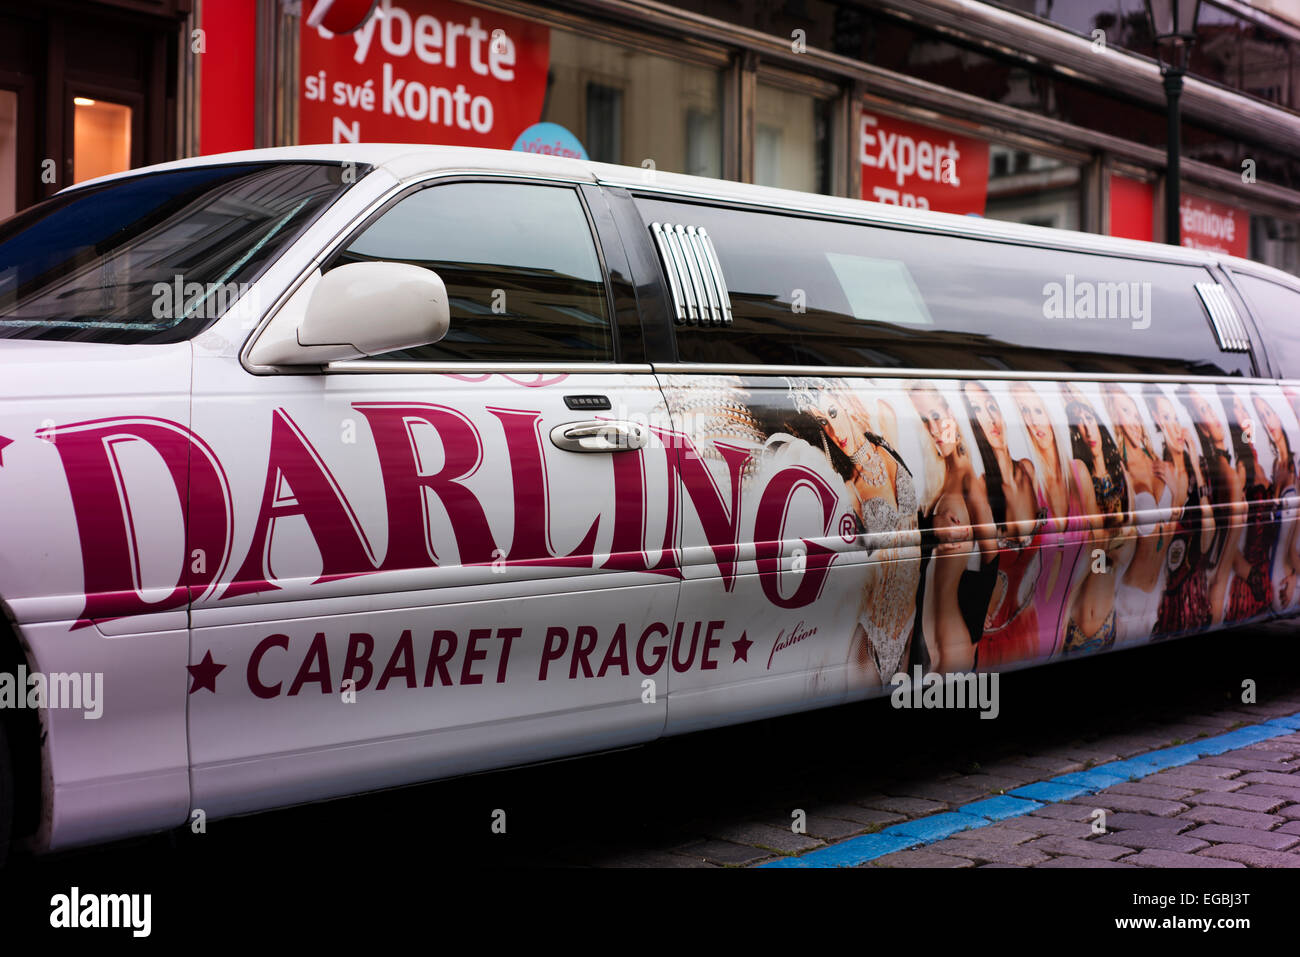 Stretch limousine outside the Darling Cabaret gentlemen's club. - Stock Image